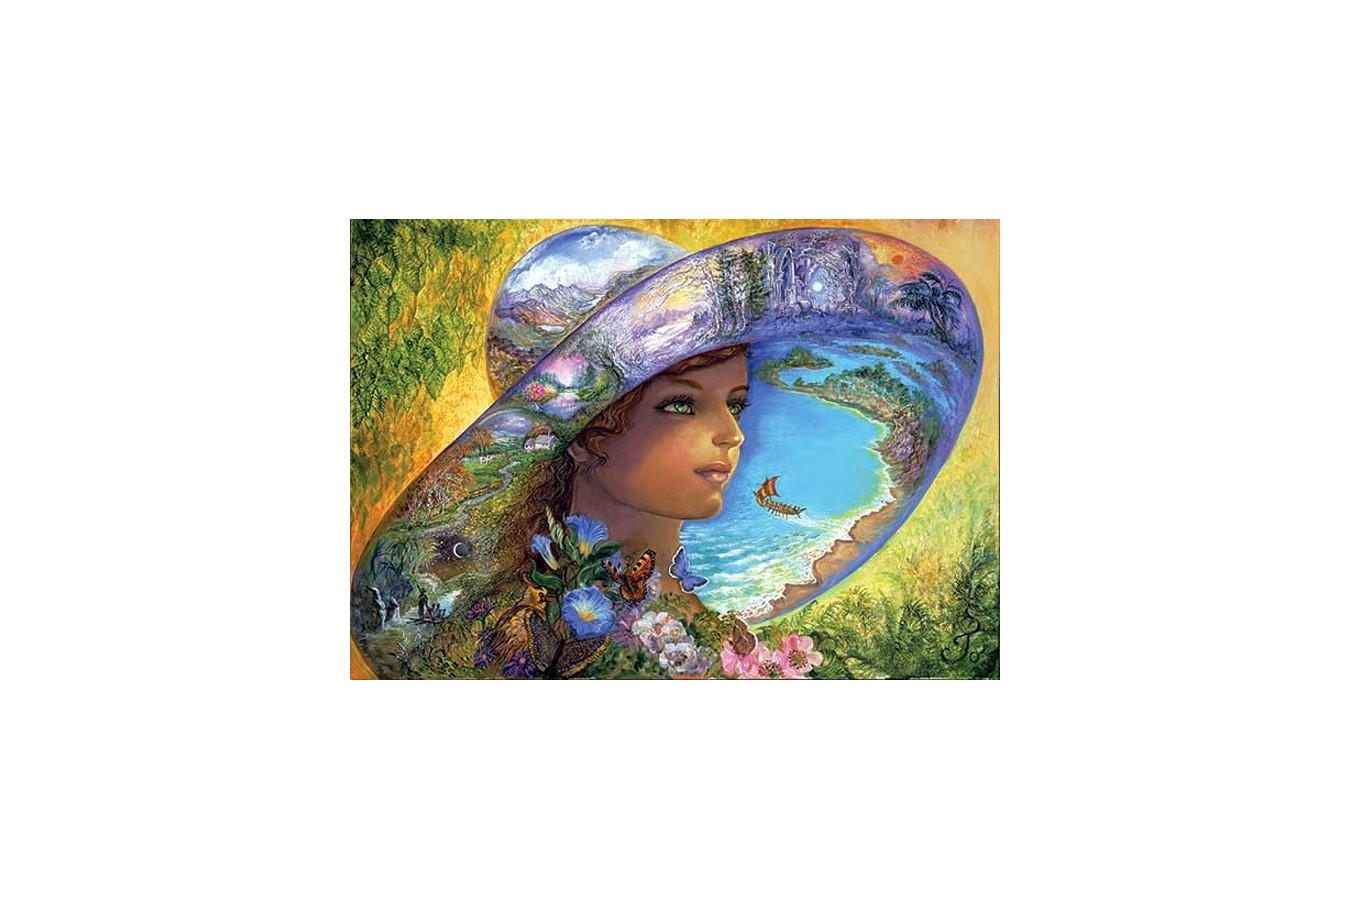 Puzzle Anatolian - Hat of Timeless Places, 1500 piese (4527)